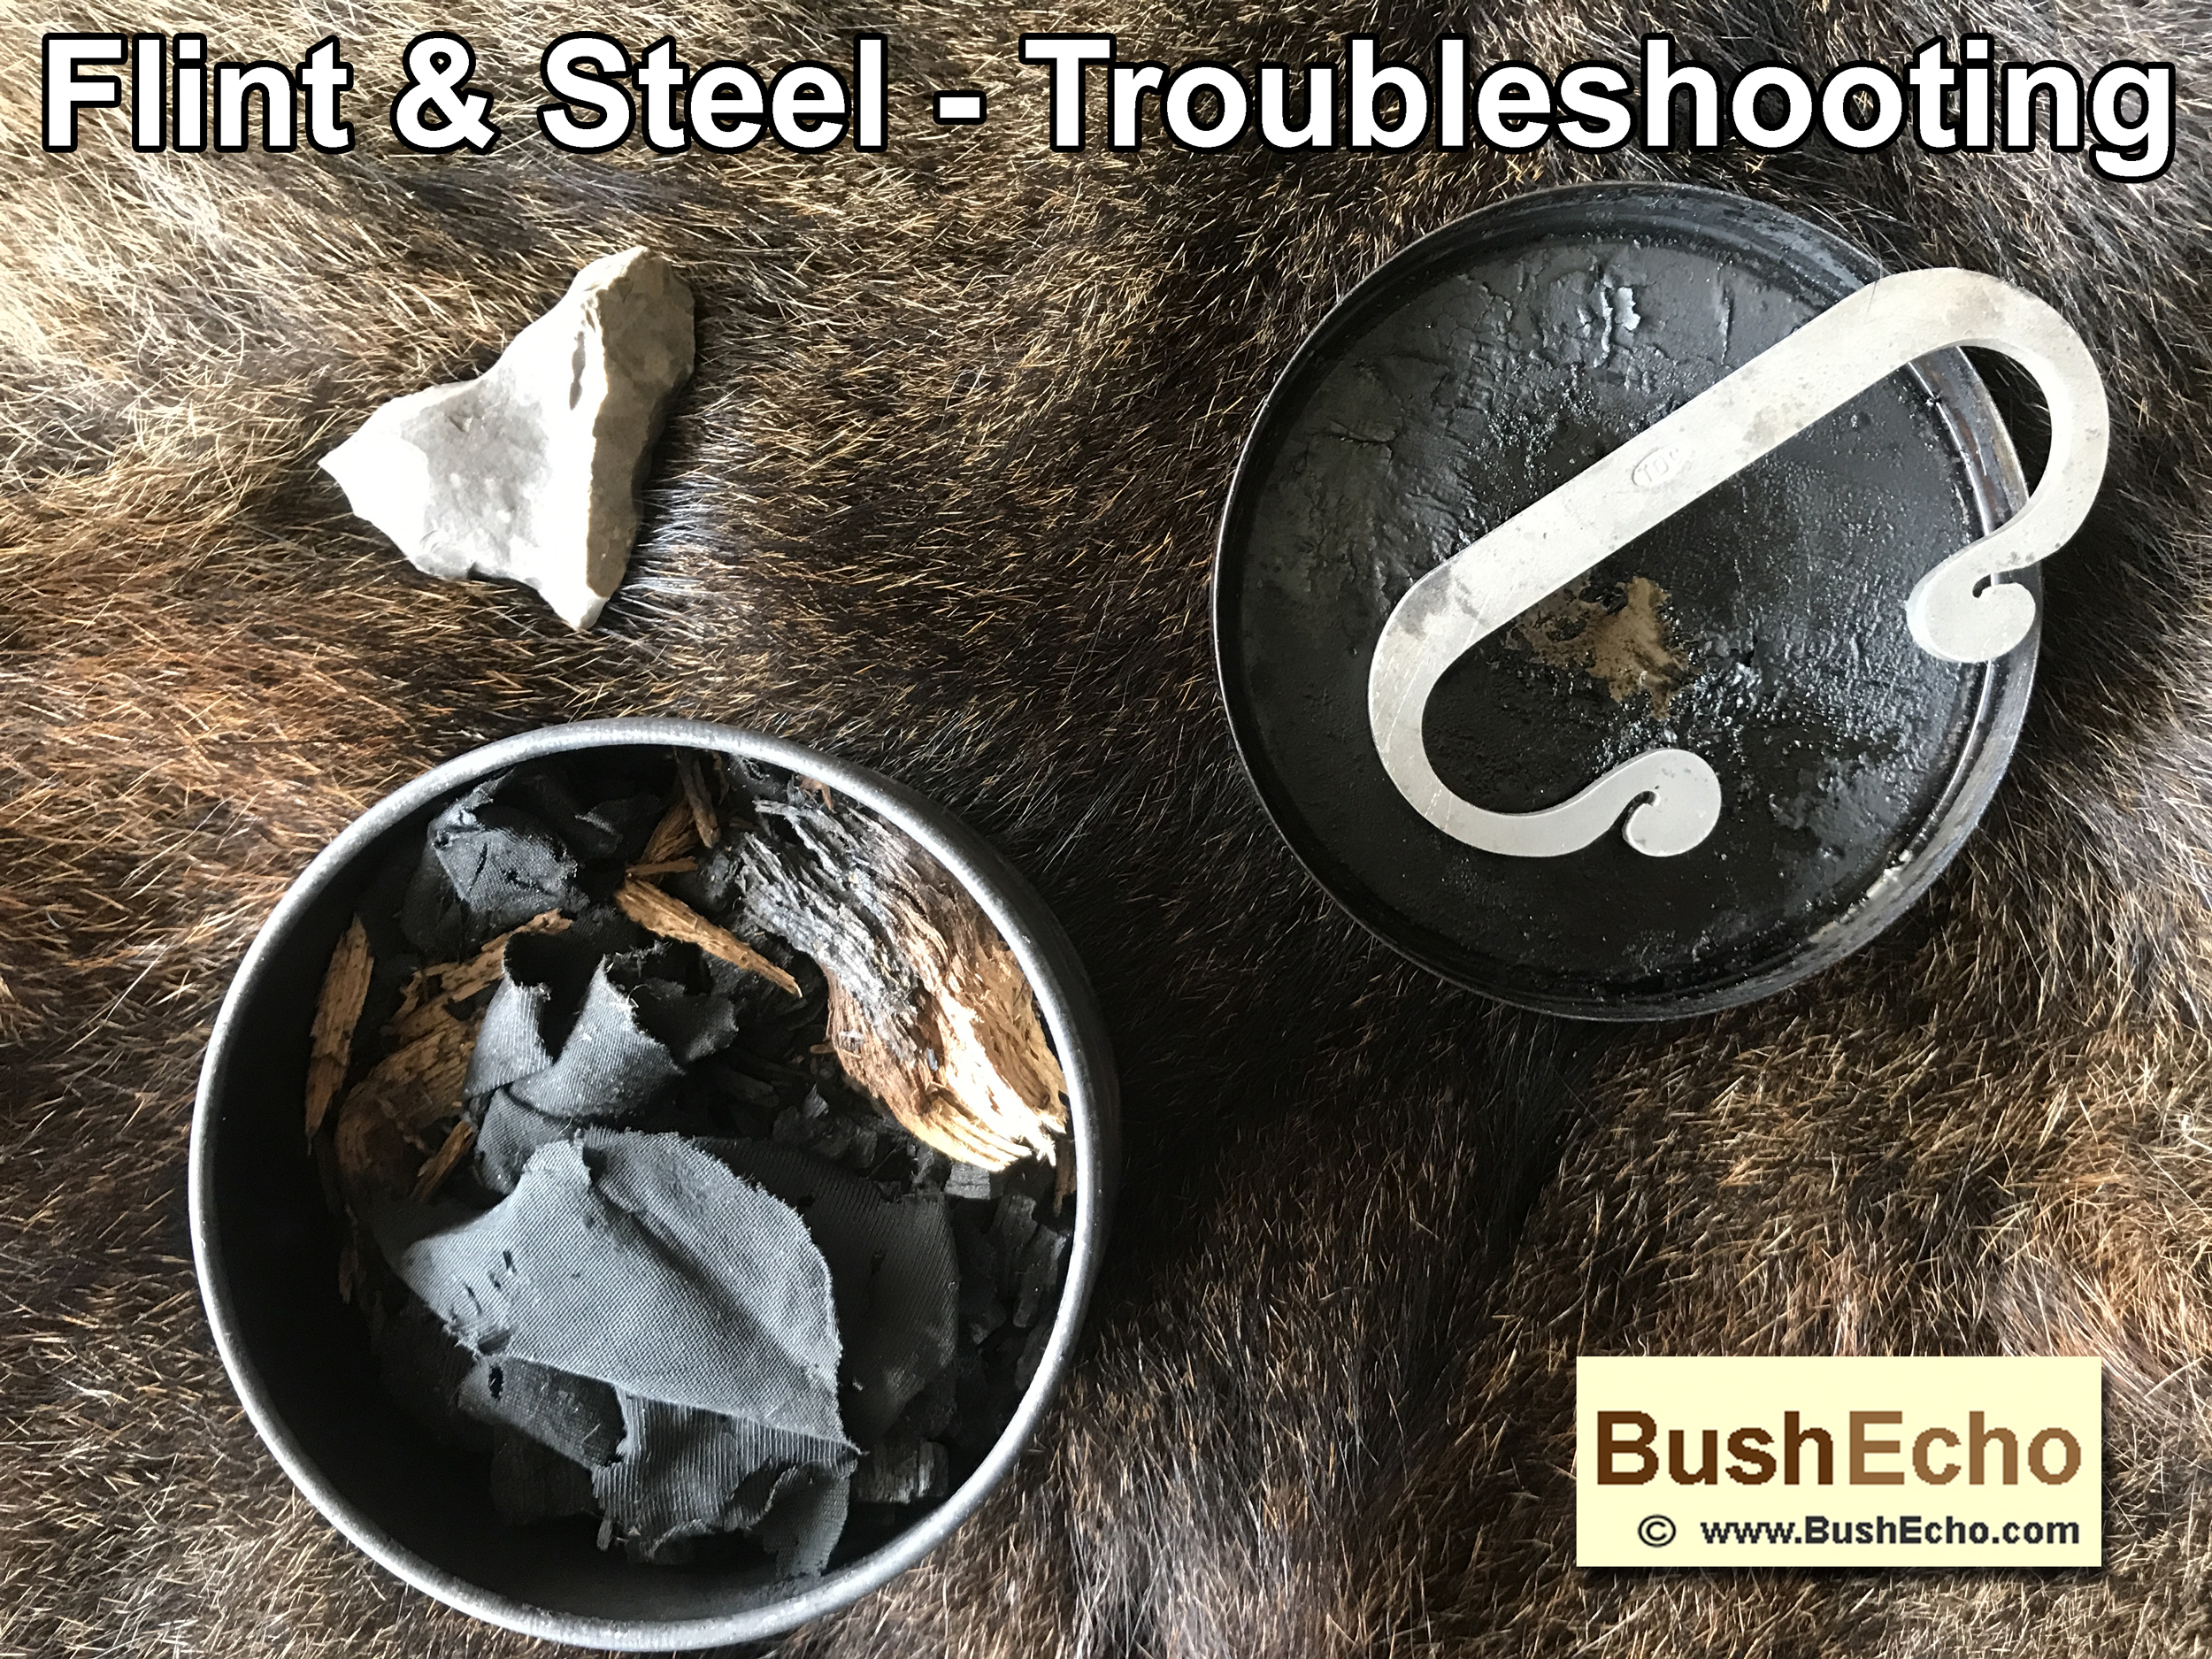 Flint and Steel Troubleshooting